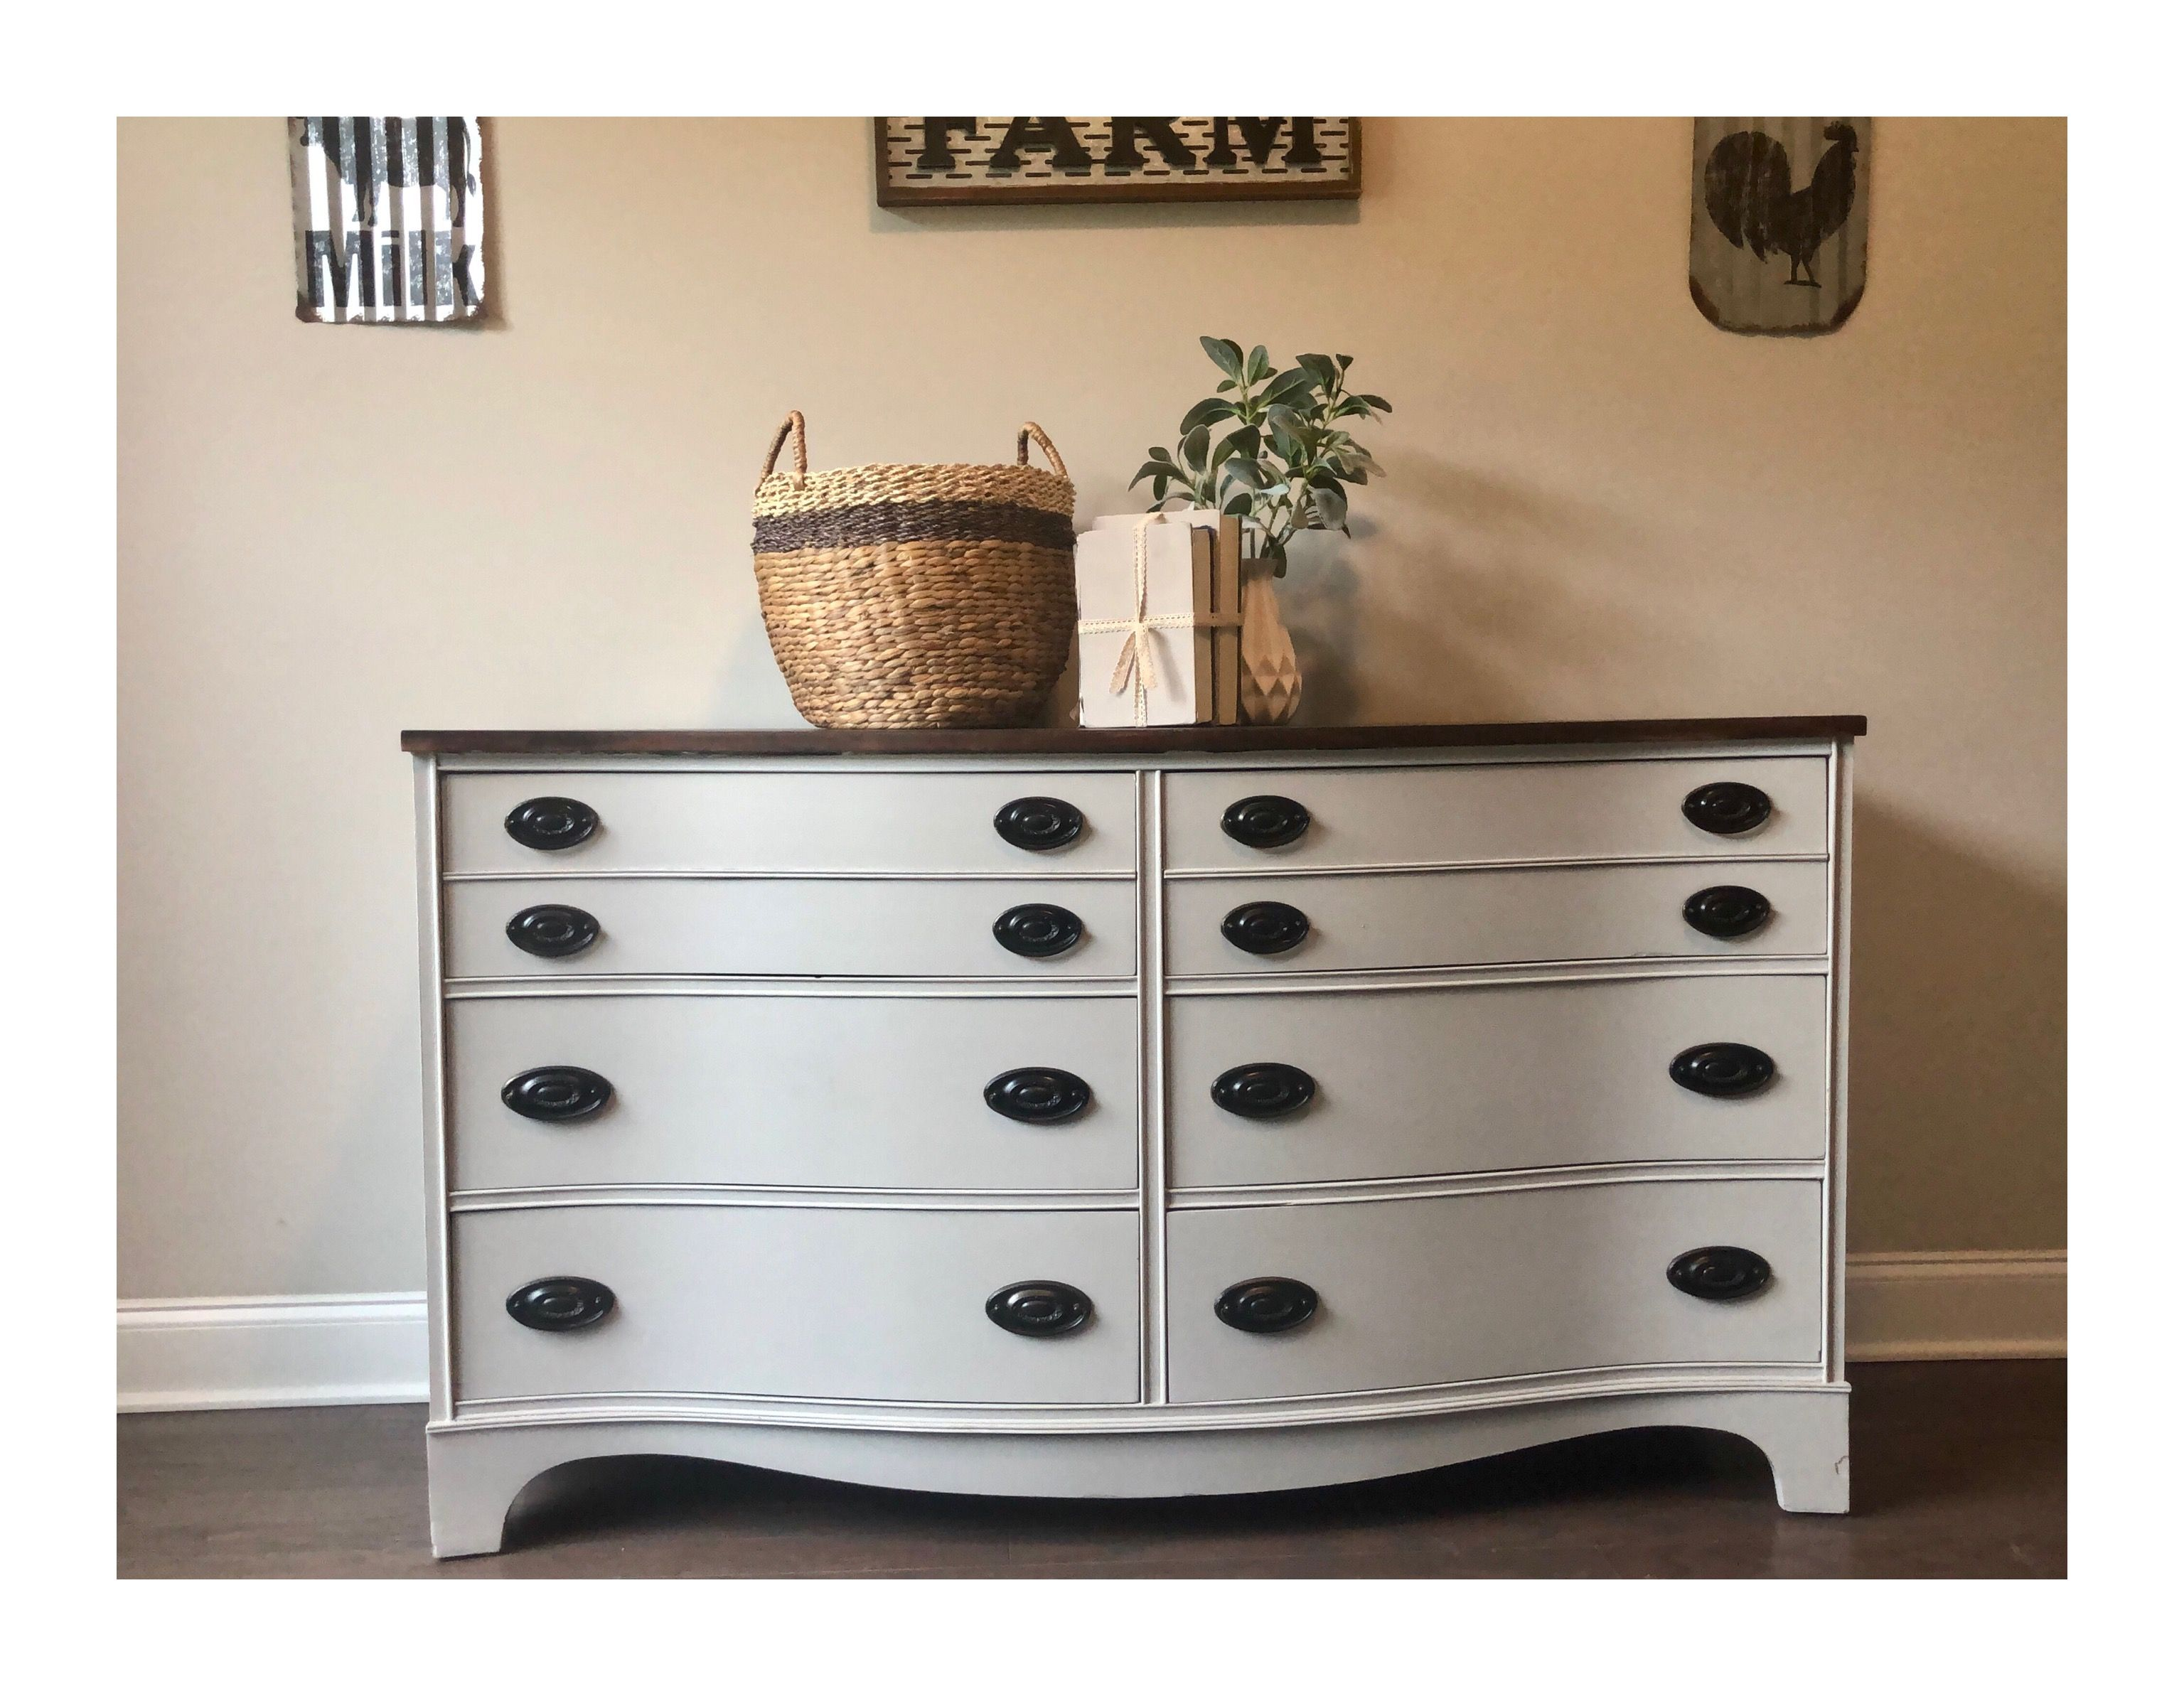 Painted This In A Light Gray Gel Stained Top Painted The Handles Black Furnituremakeover Furniturepai Flipping Furniture Furniture Makeover Diy Furniture [ 2386 x 3072 Pixel ]